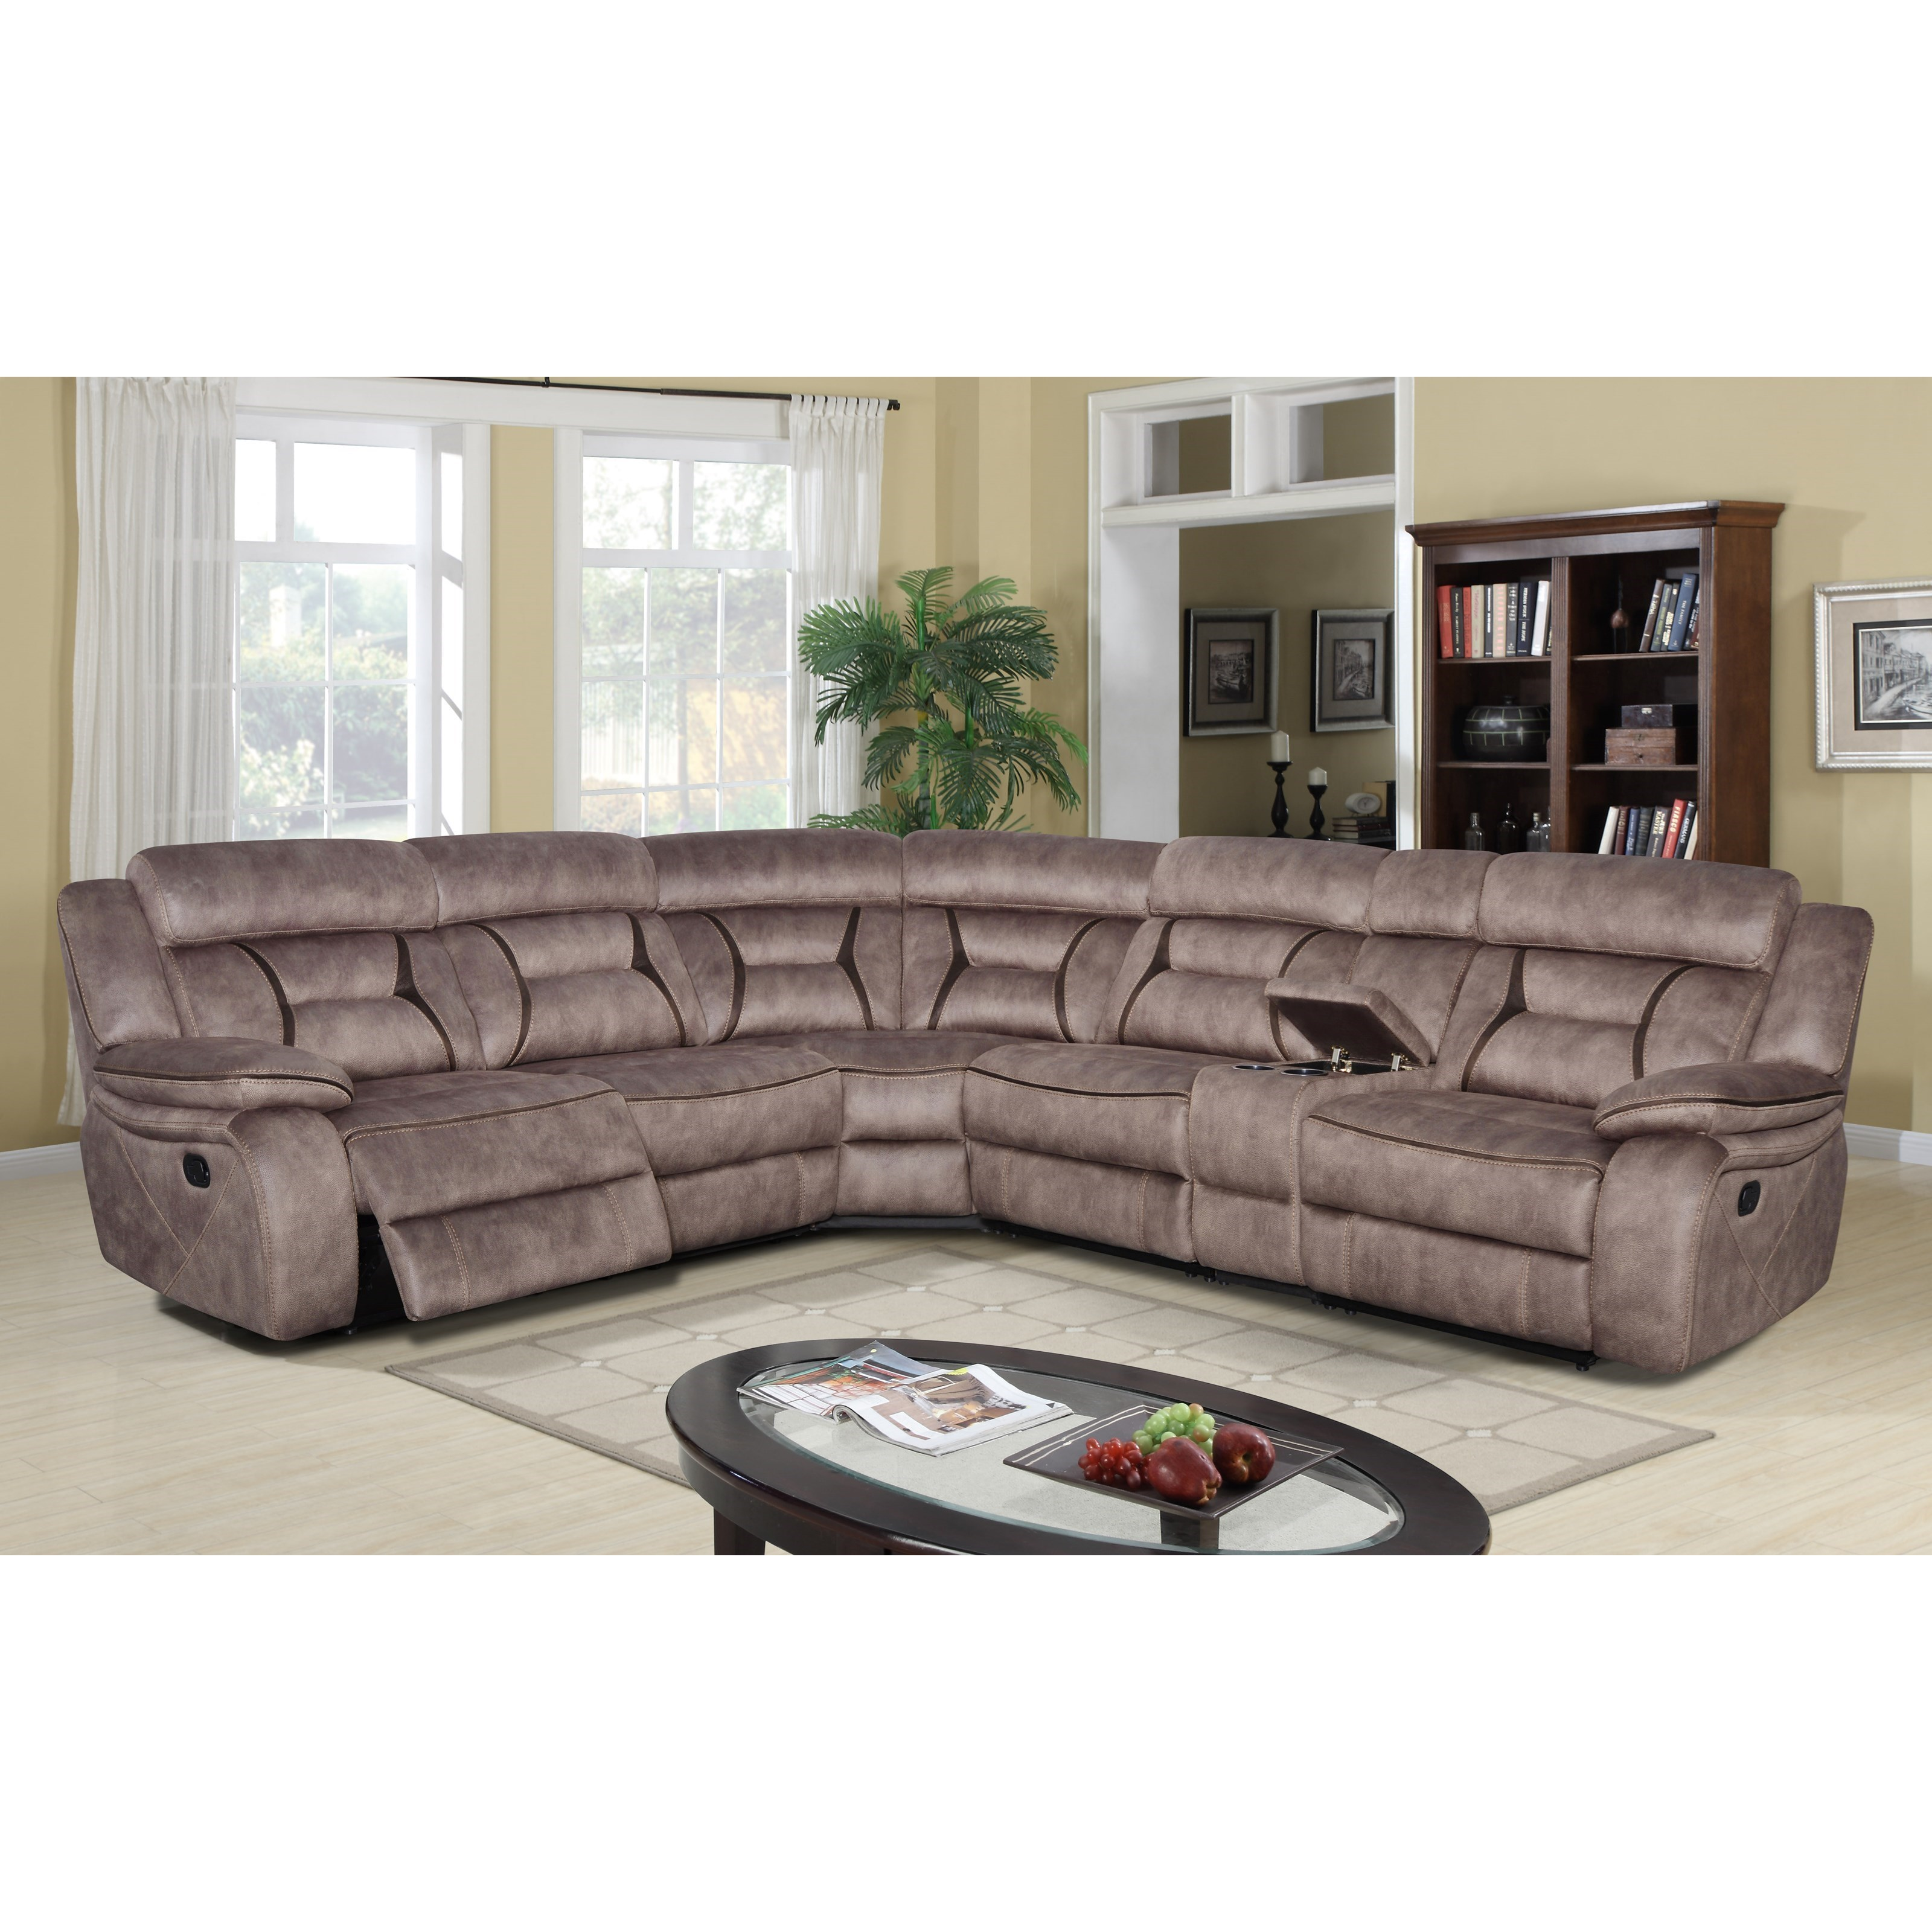 Cyrus 6 Pc Reclining Sectional Sofa by Klaussner International at Northeast Factory Direct